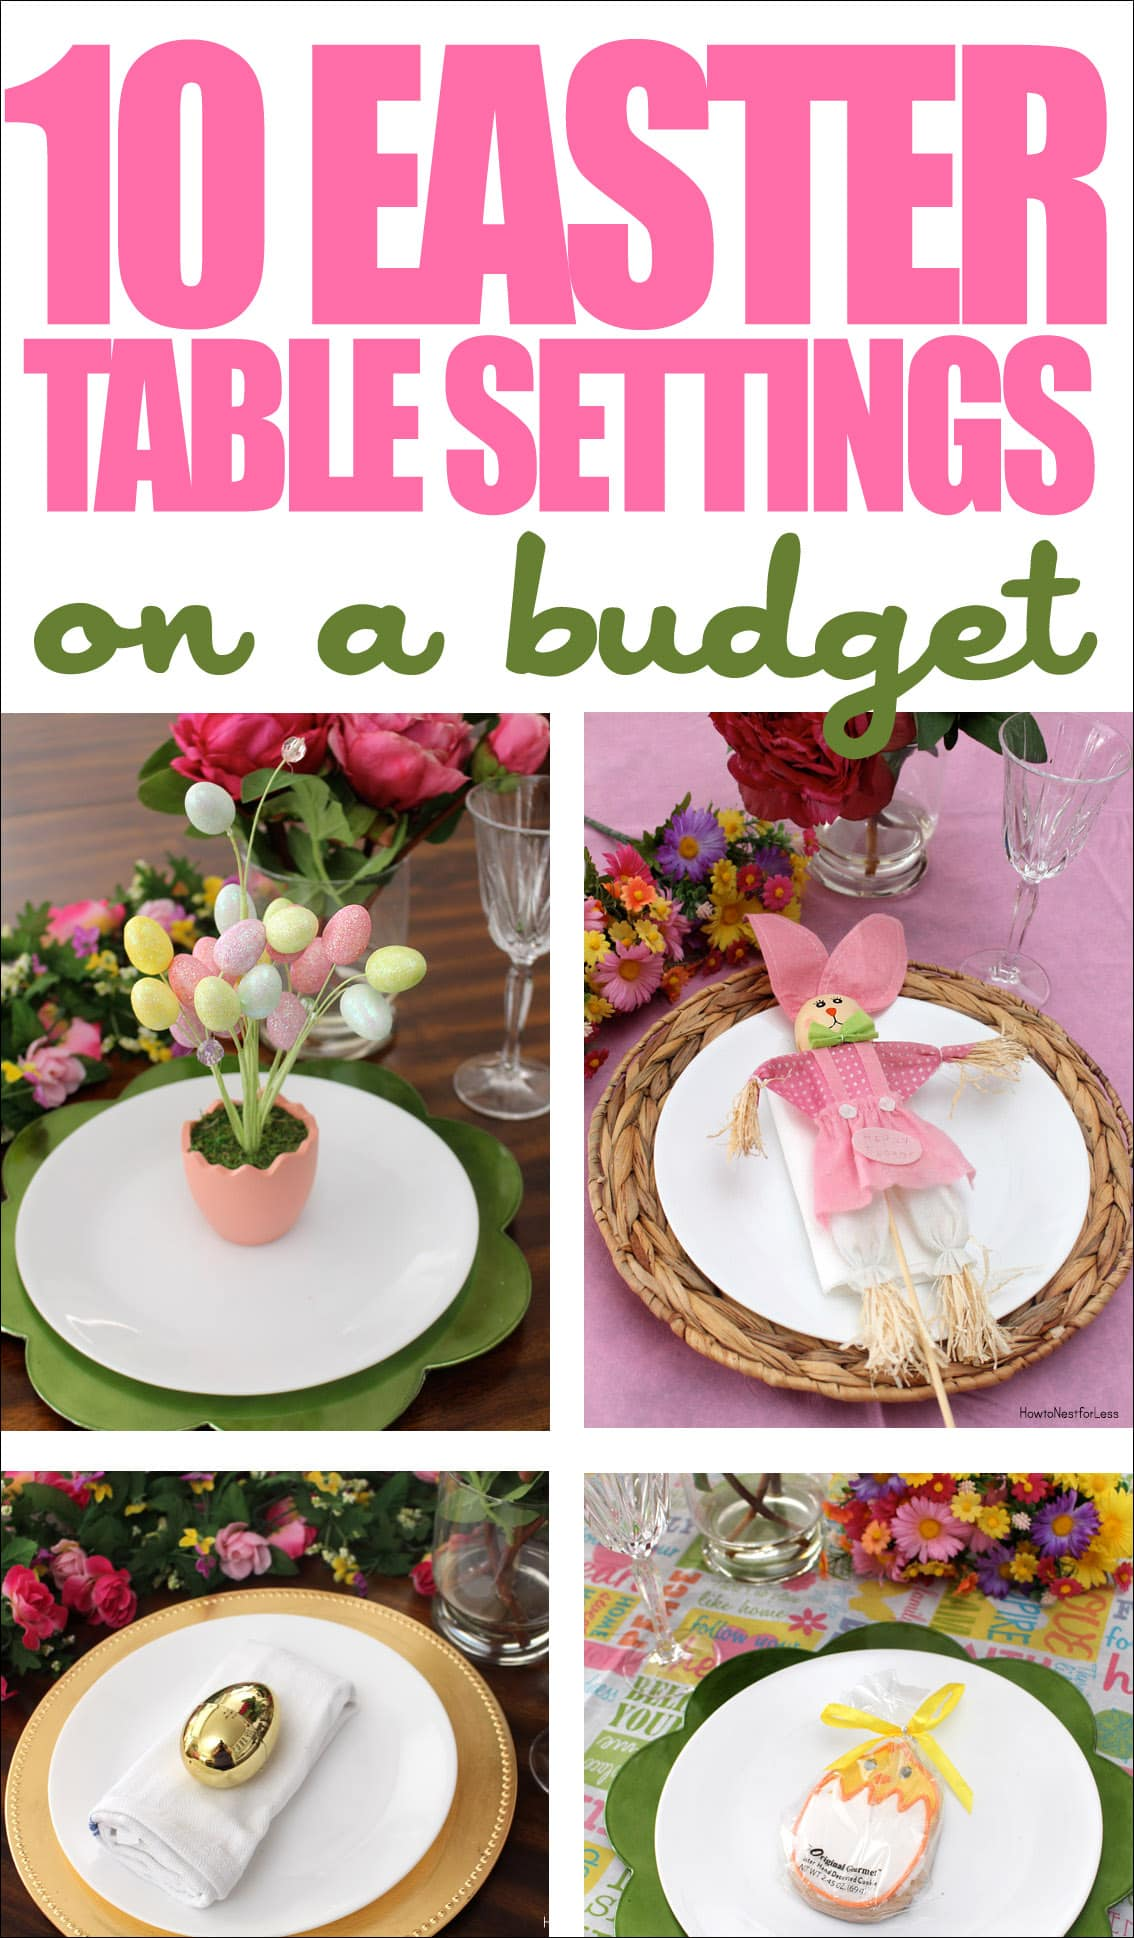 10 easter table settings  sc 1 st  How to Nest for Less & 10 Easter Table Setting Ideas on a Budget - How to Nest for Less™